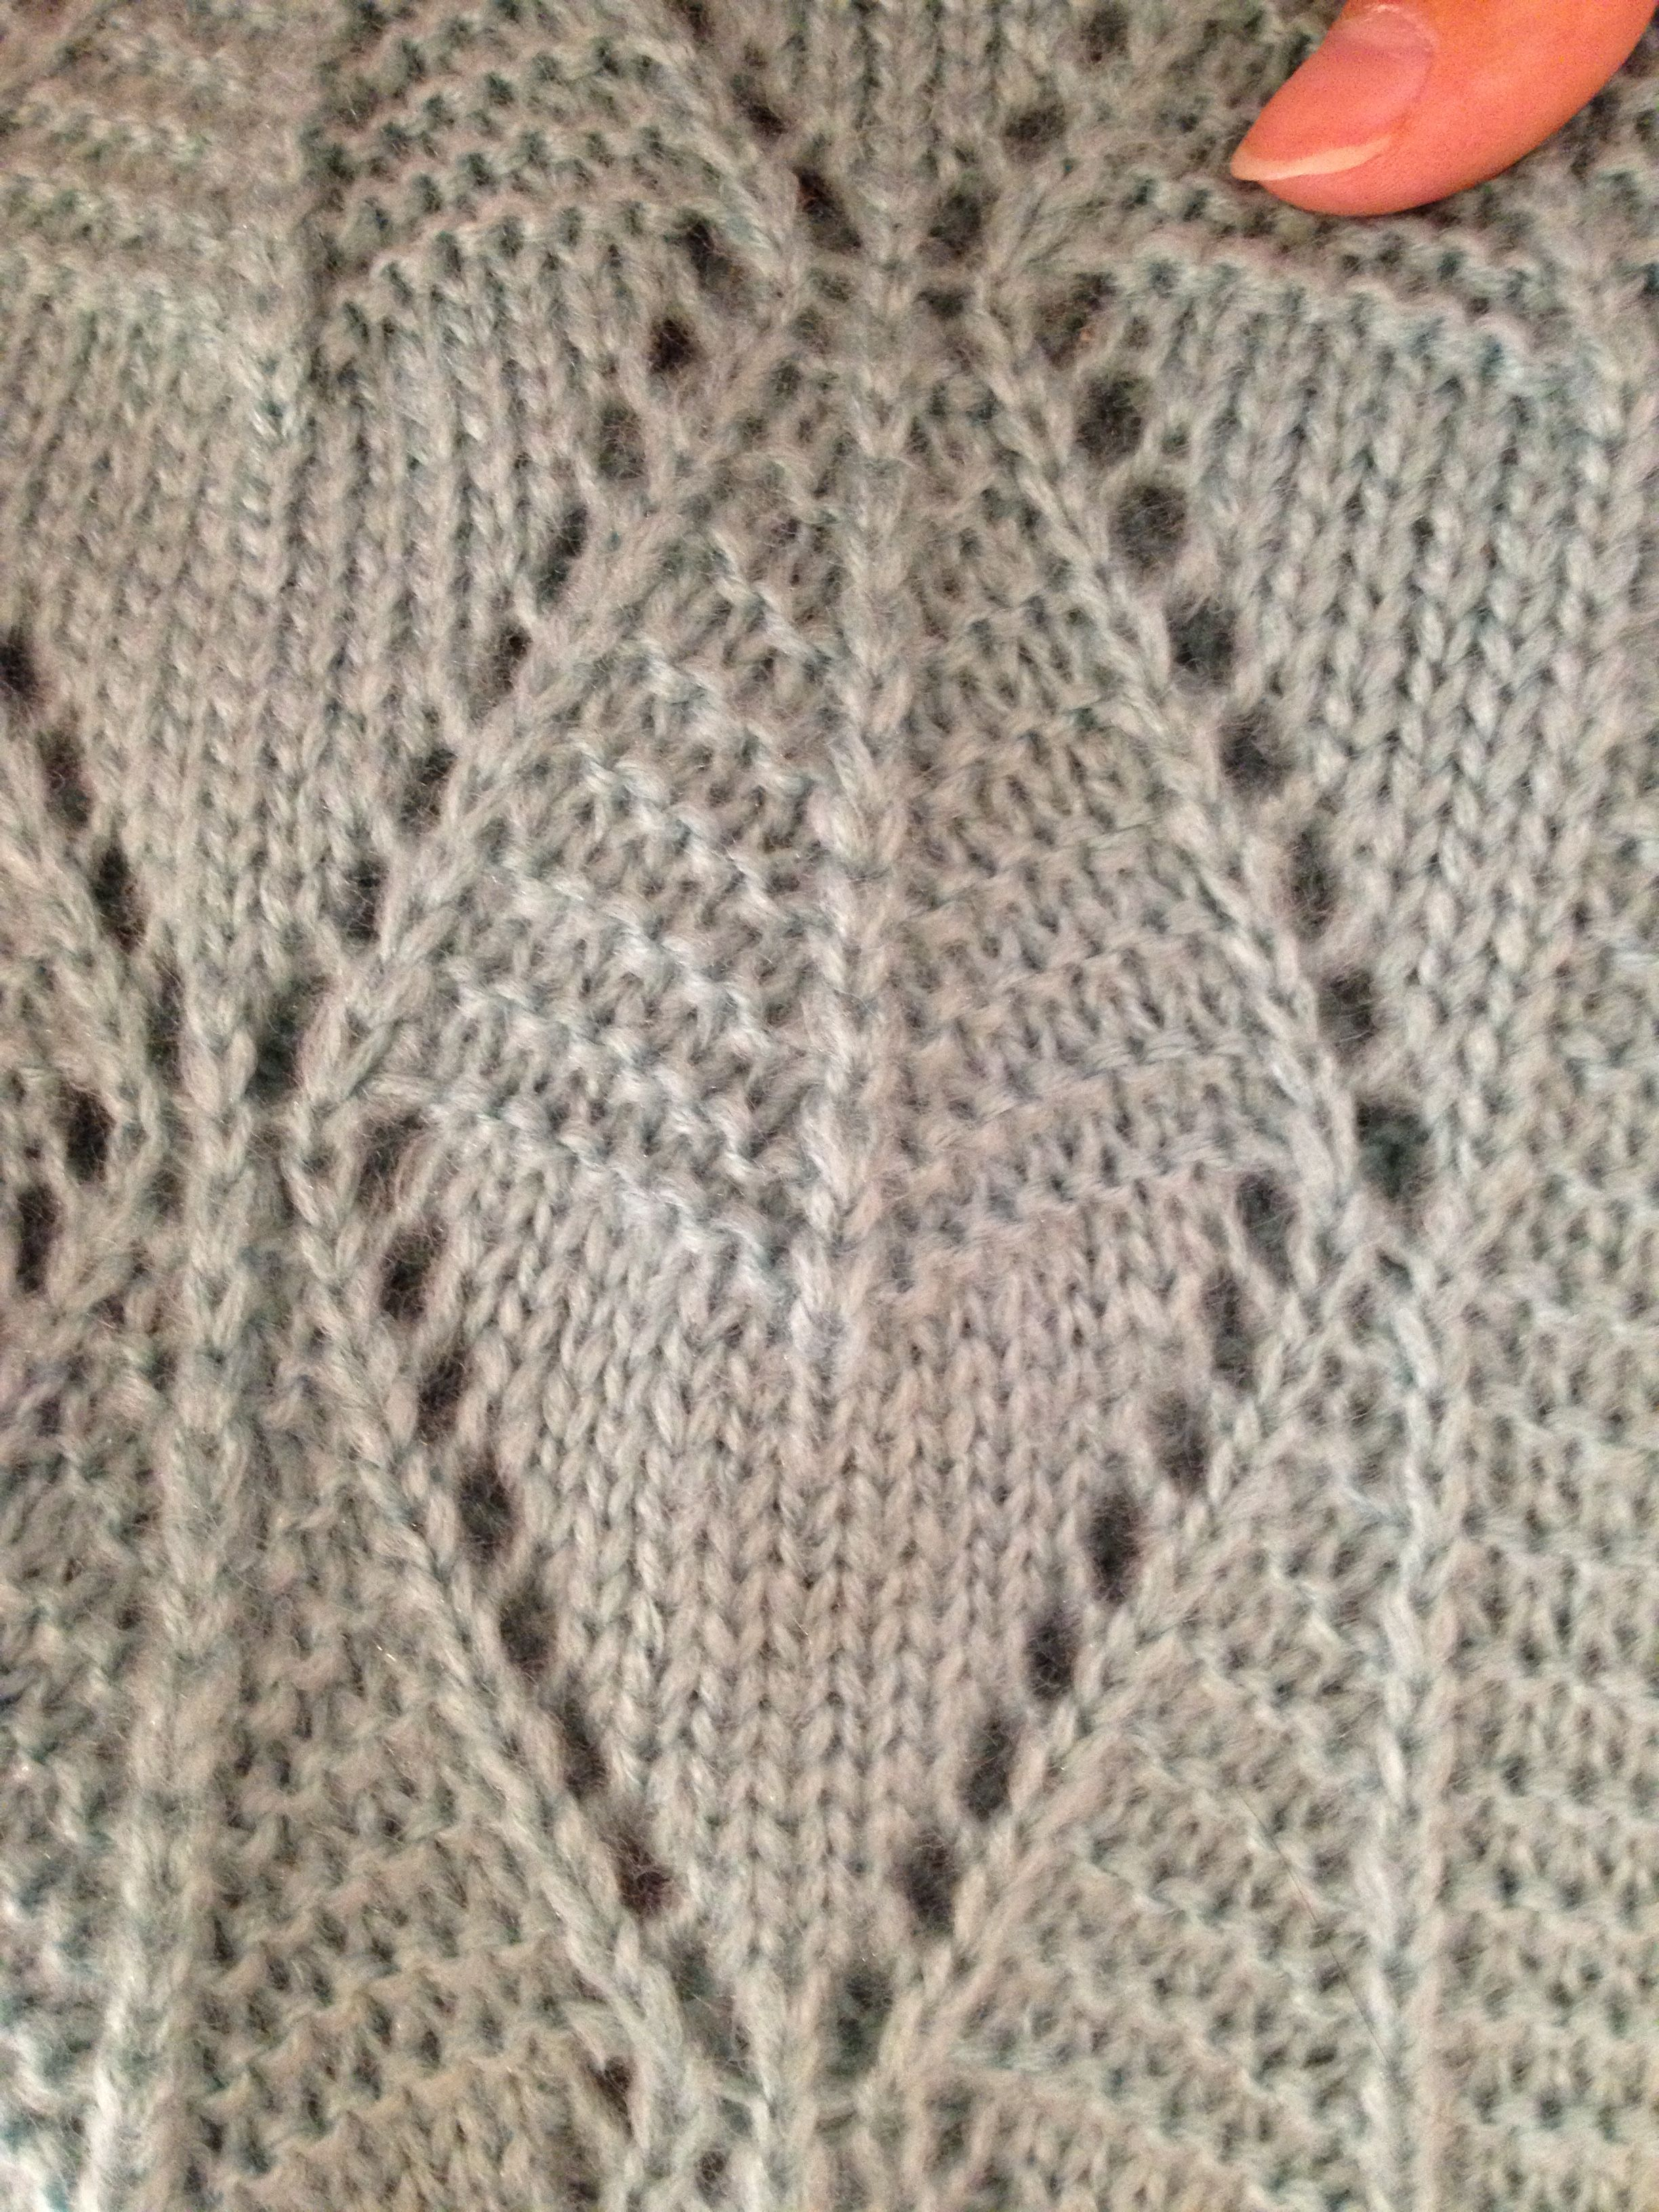 Knitting Lace Pattern With Holes Knitted Pinterest Lace Patterns